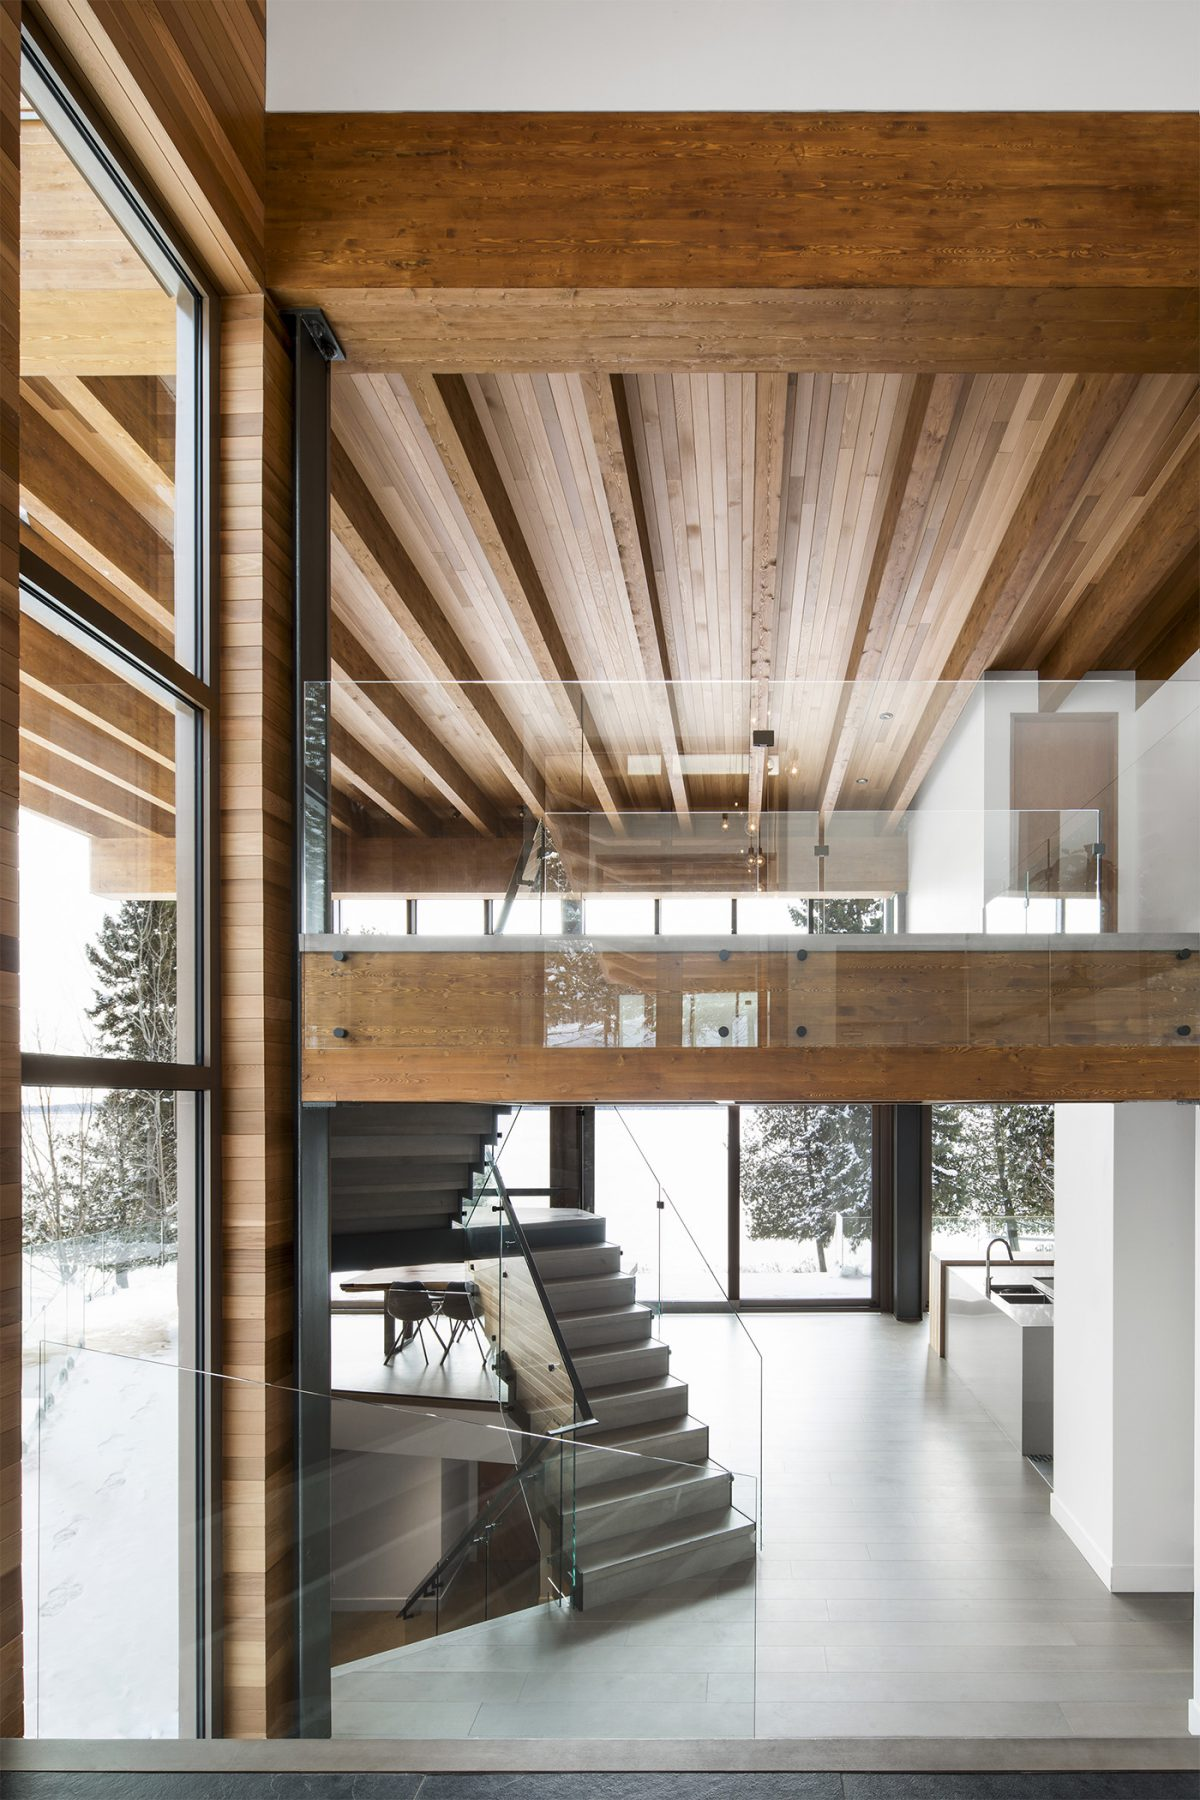 Cabin with double height space